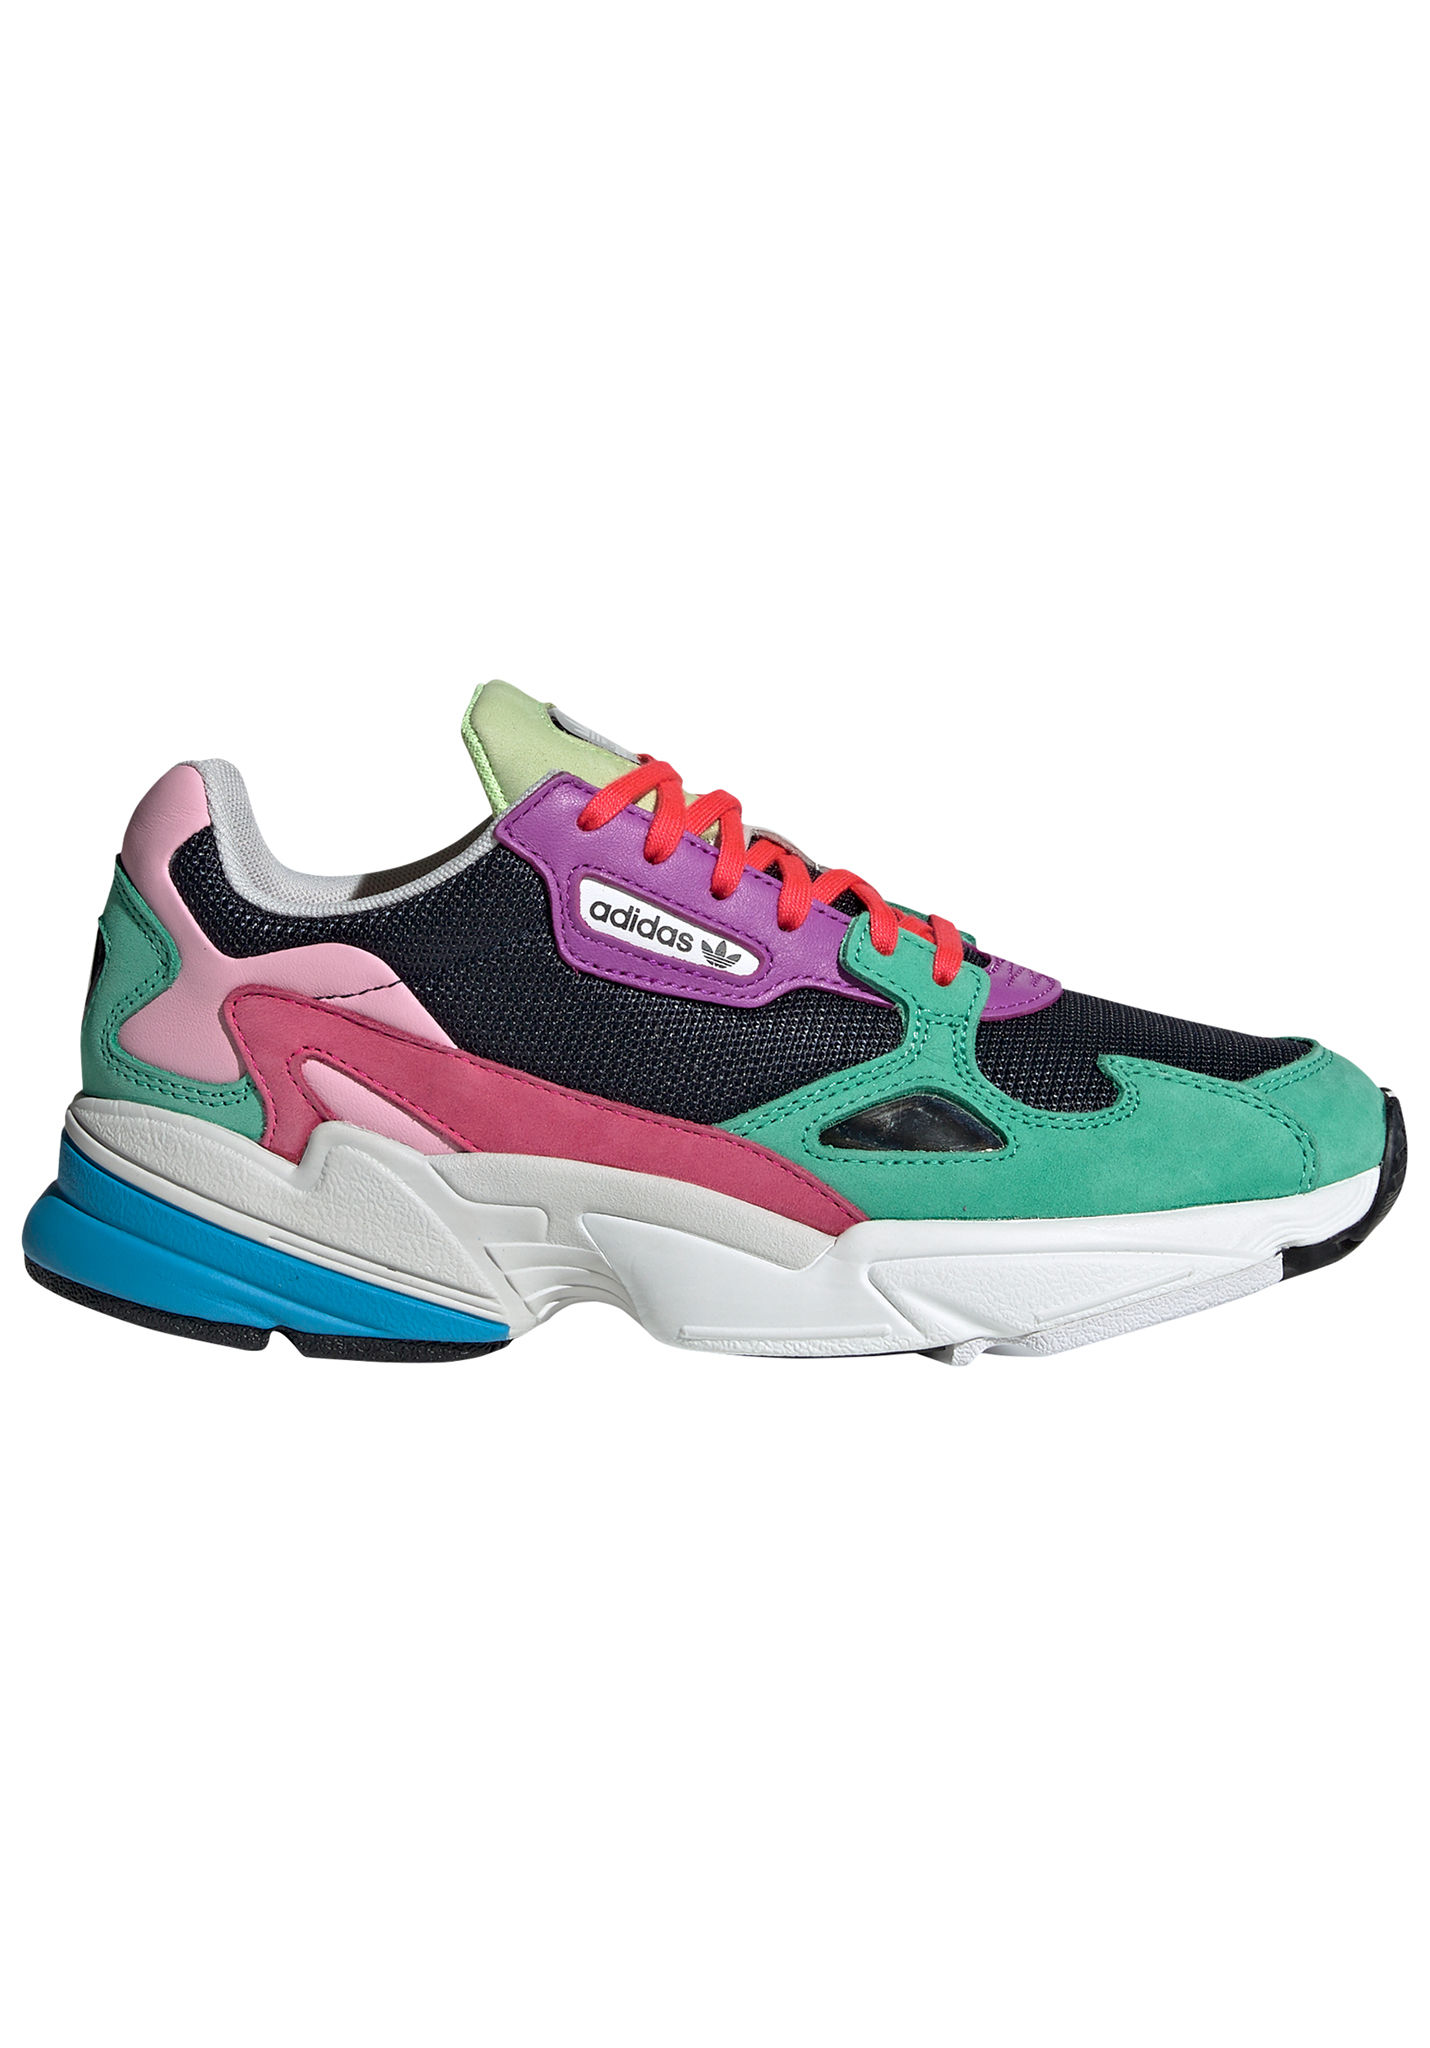 bfffa4d331 adidas Originals Falcon - Sneaker für Damen - Blau - Planet Sports